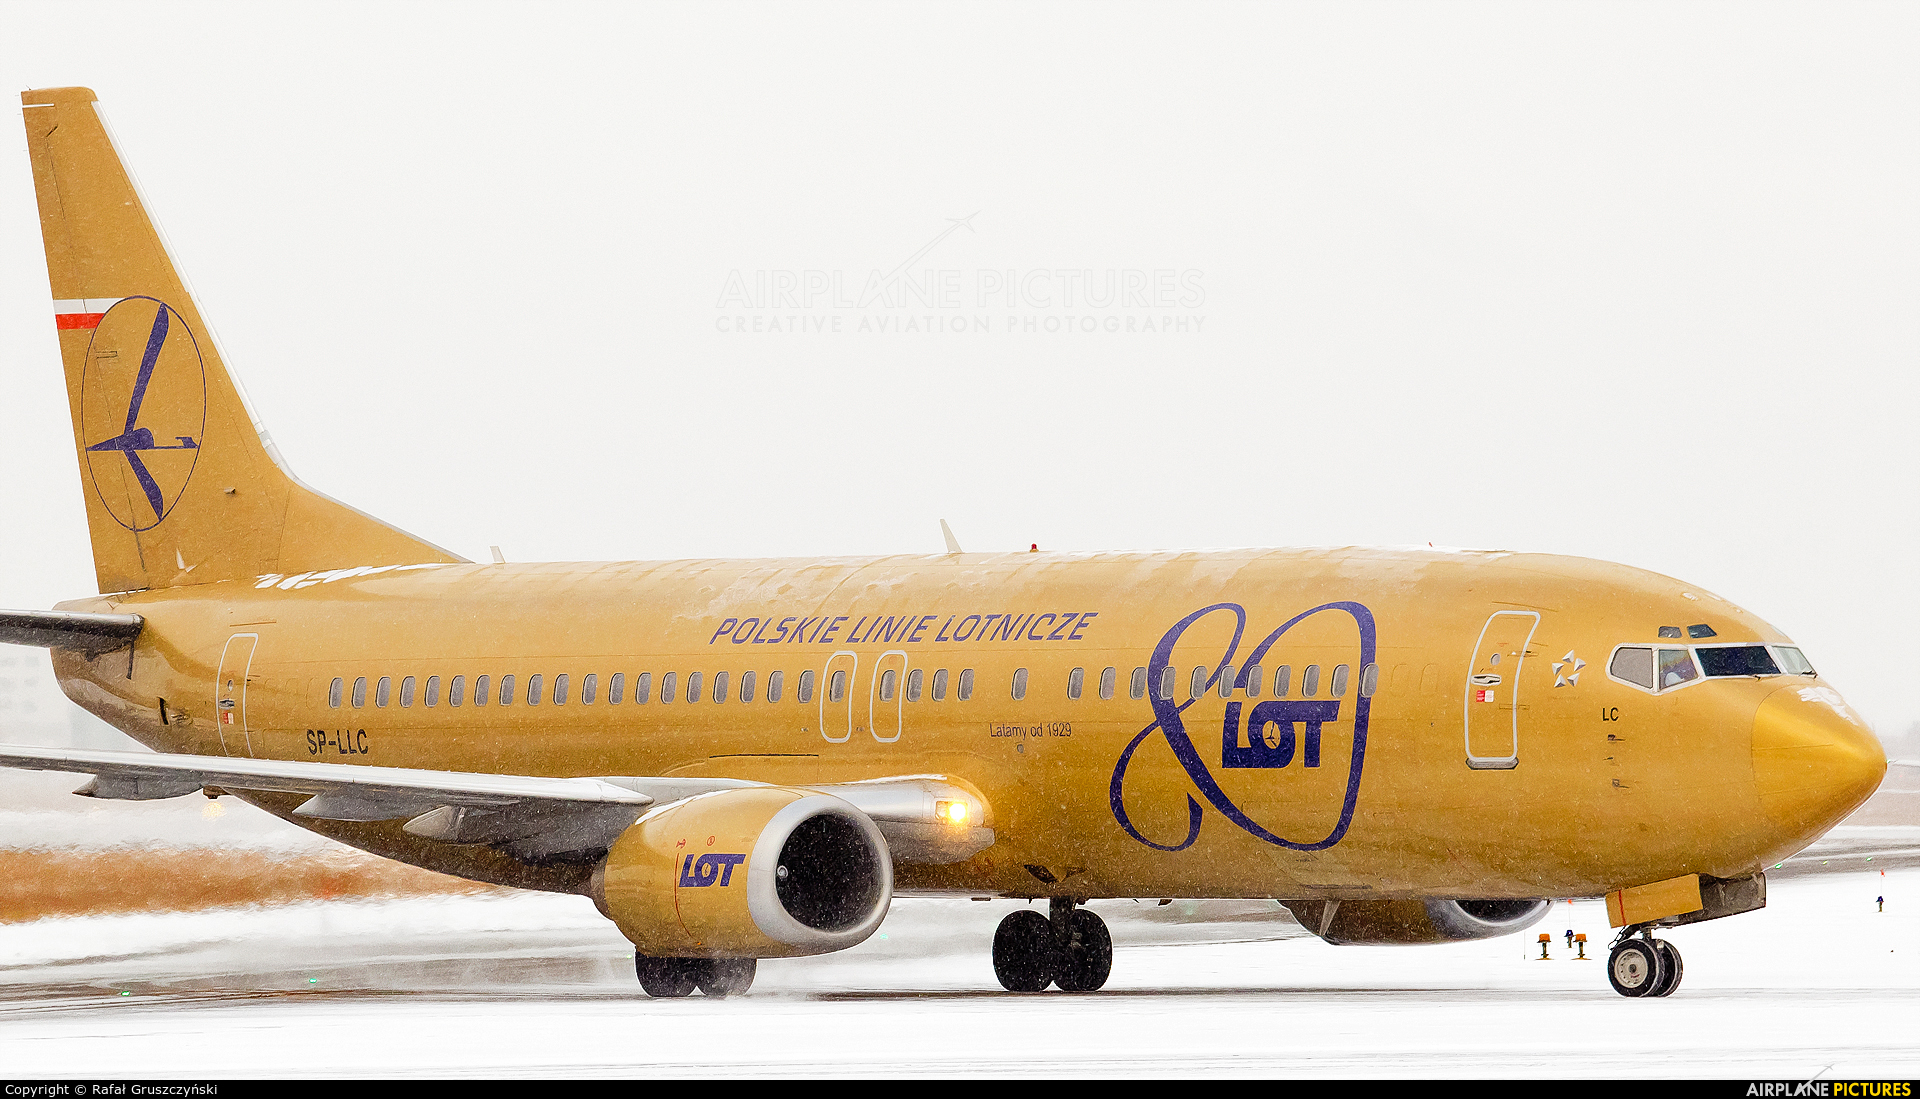 SP LLC LOT Polish Airlines Boeing 737 400 At Warsaw Frederic